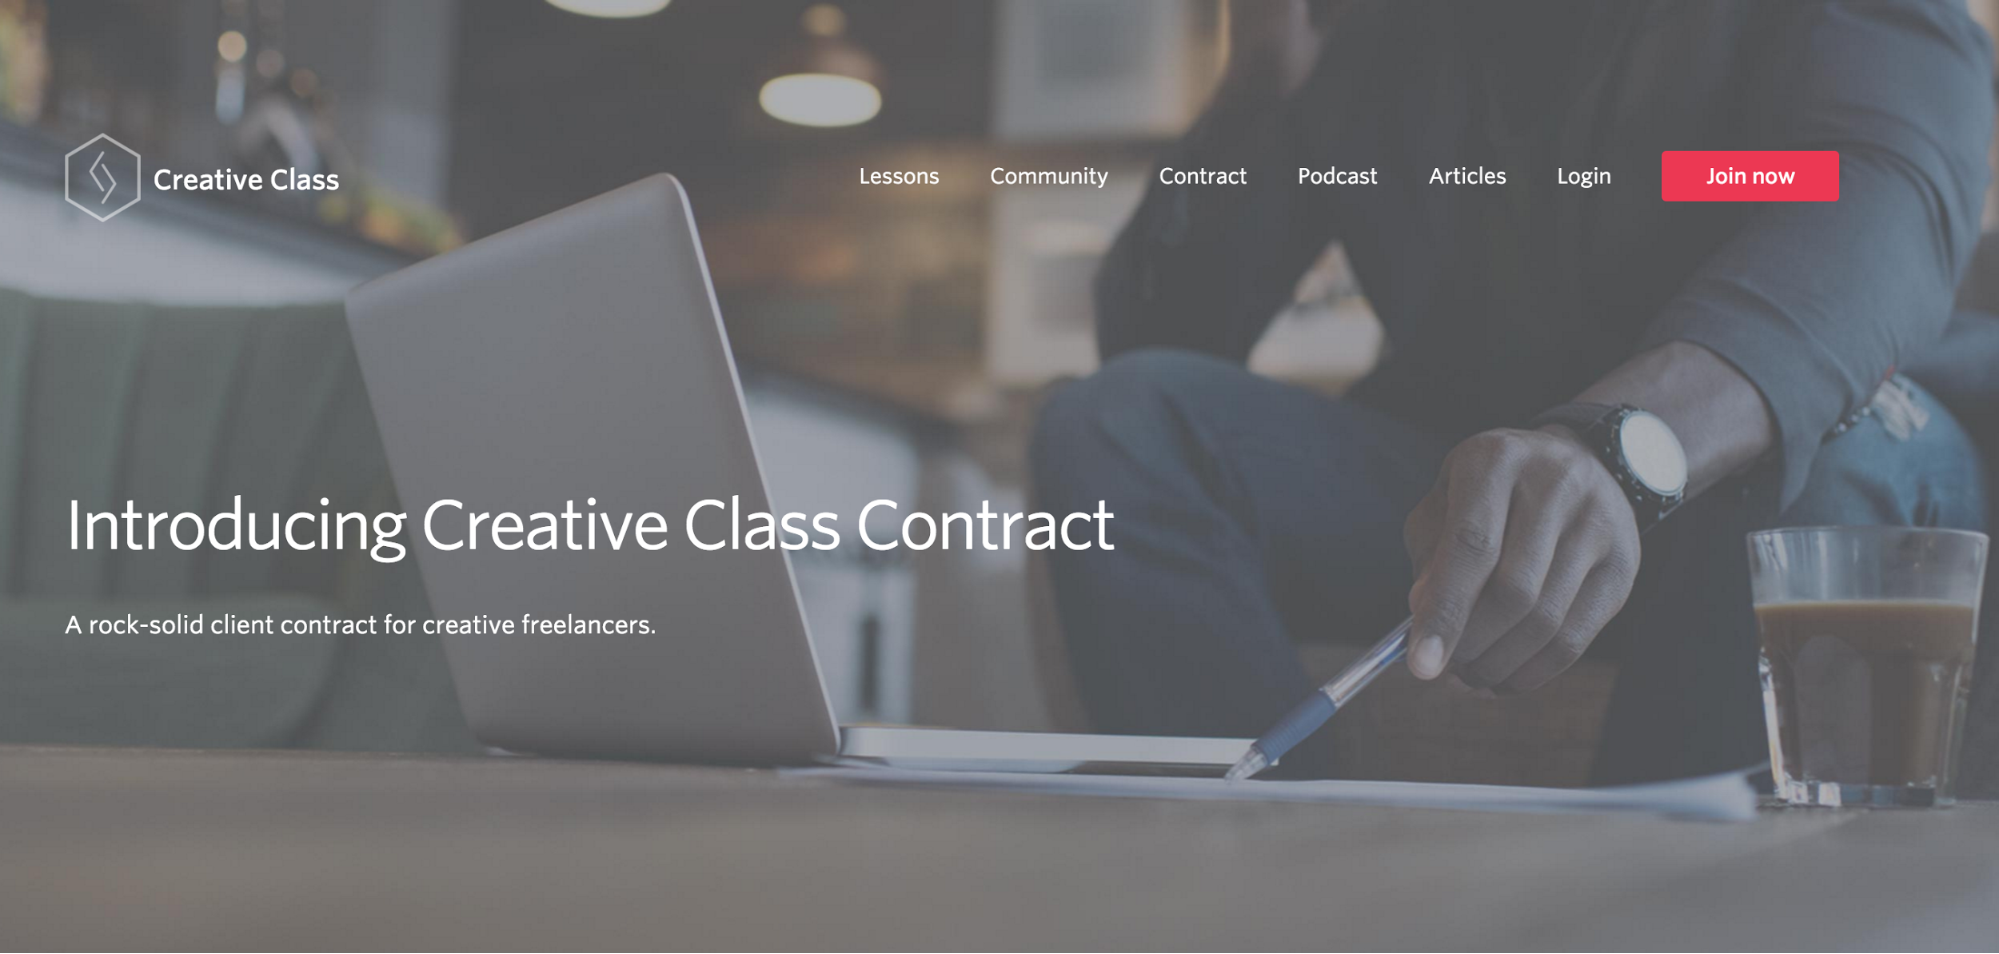 Creative Class contract course page